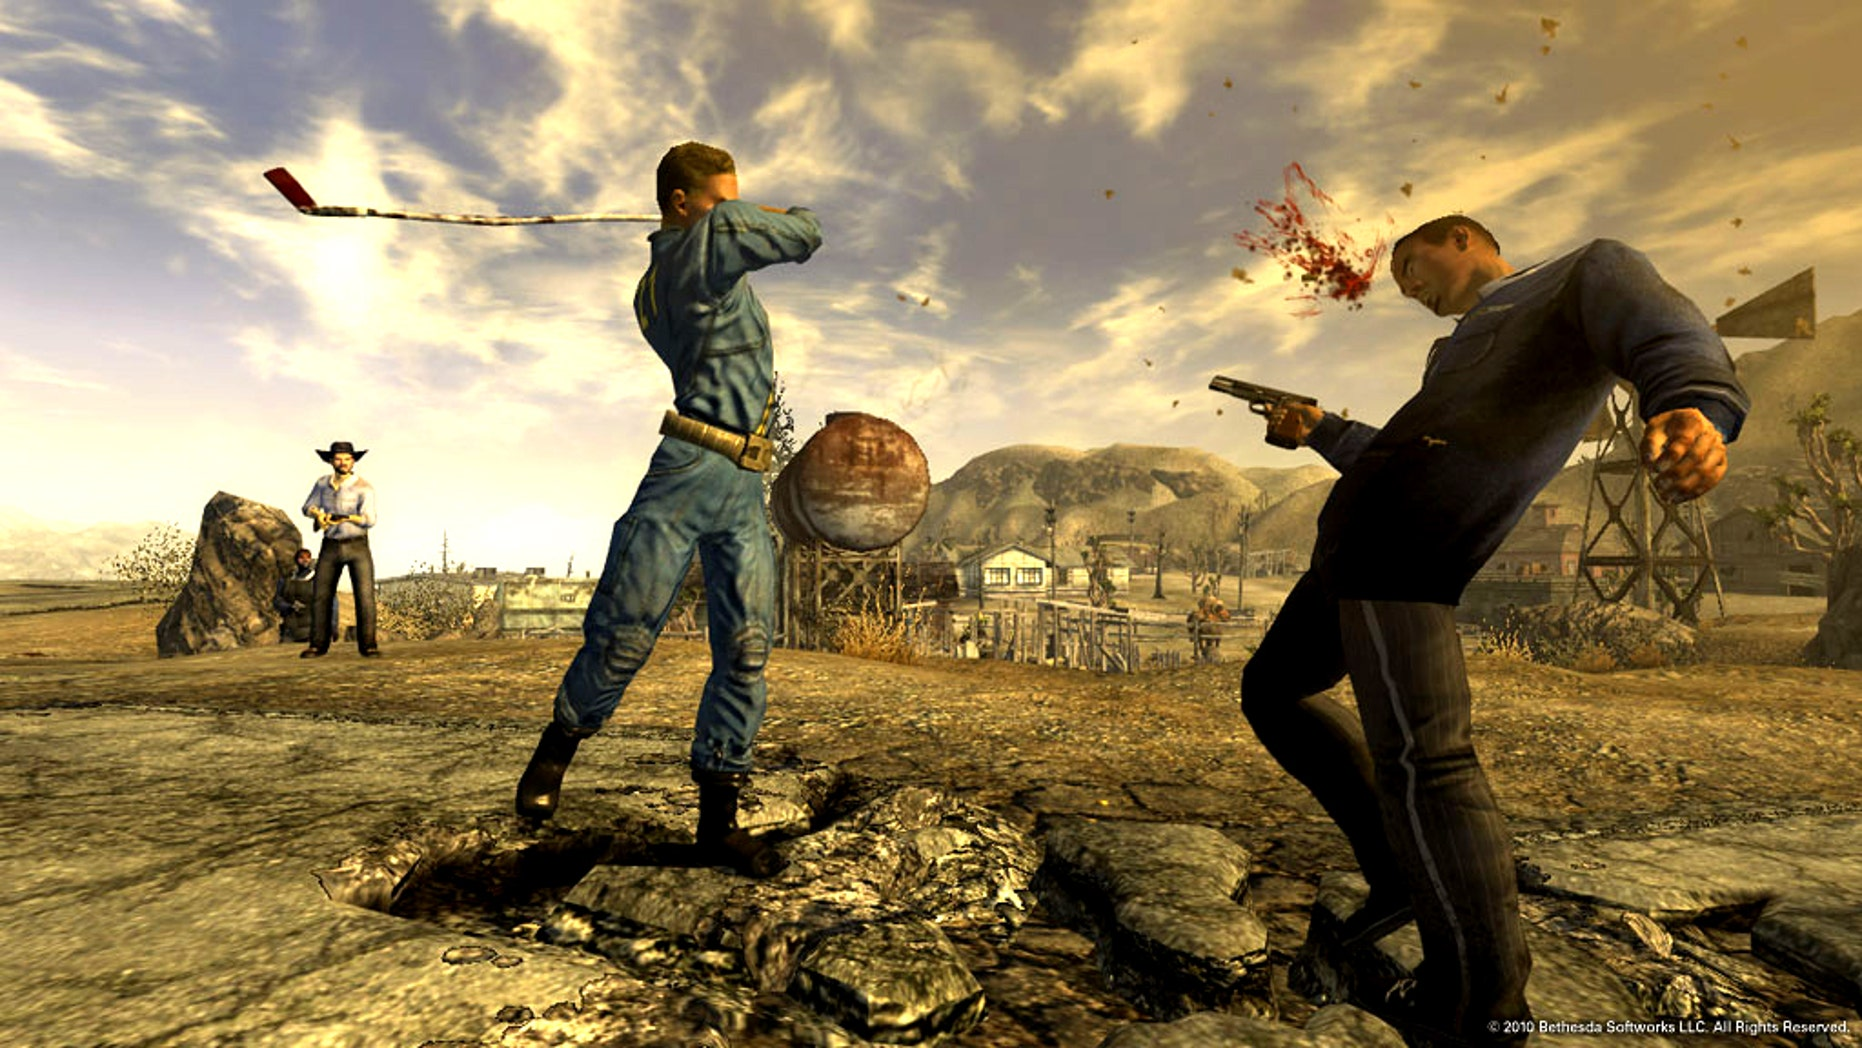 A screenshot from the game Fallout 3, which some argue paints a particularly violent picture of a post-apocalyptic Washington, D.C.